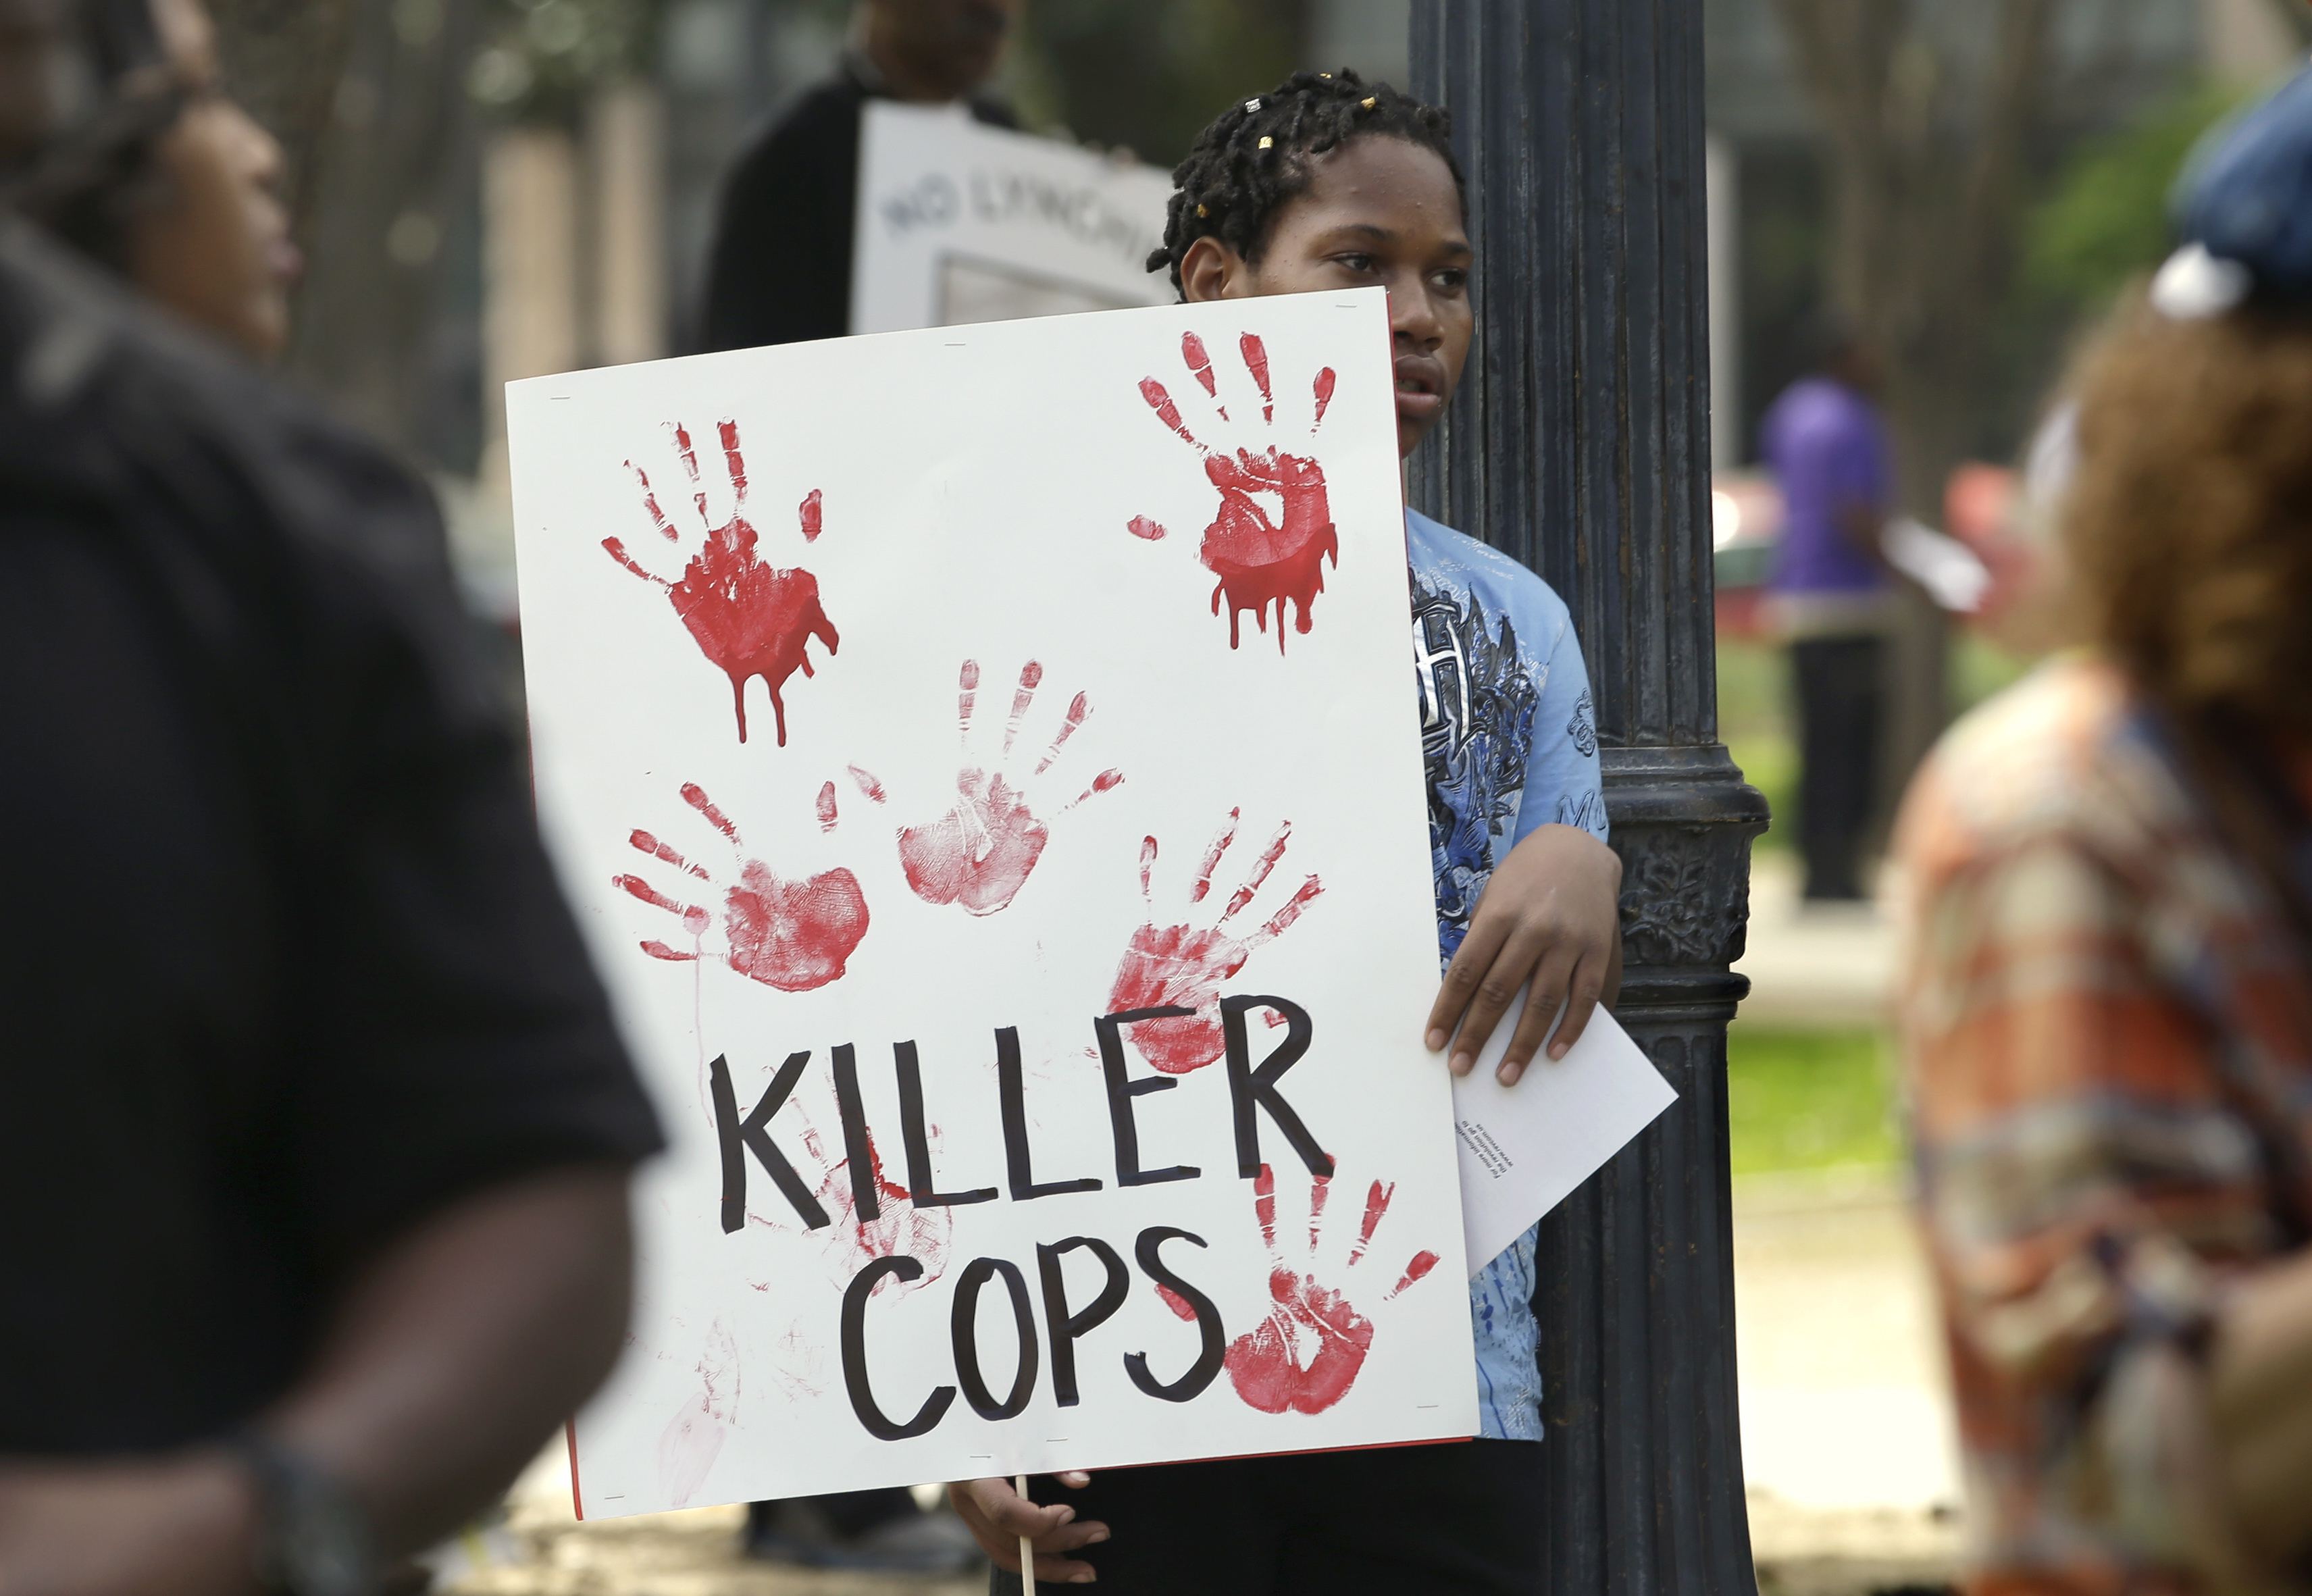 Sacramento police officers who shot Stephon Clark receiving death threats